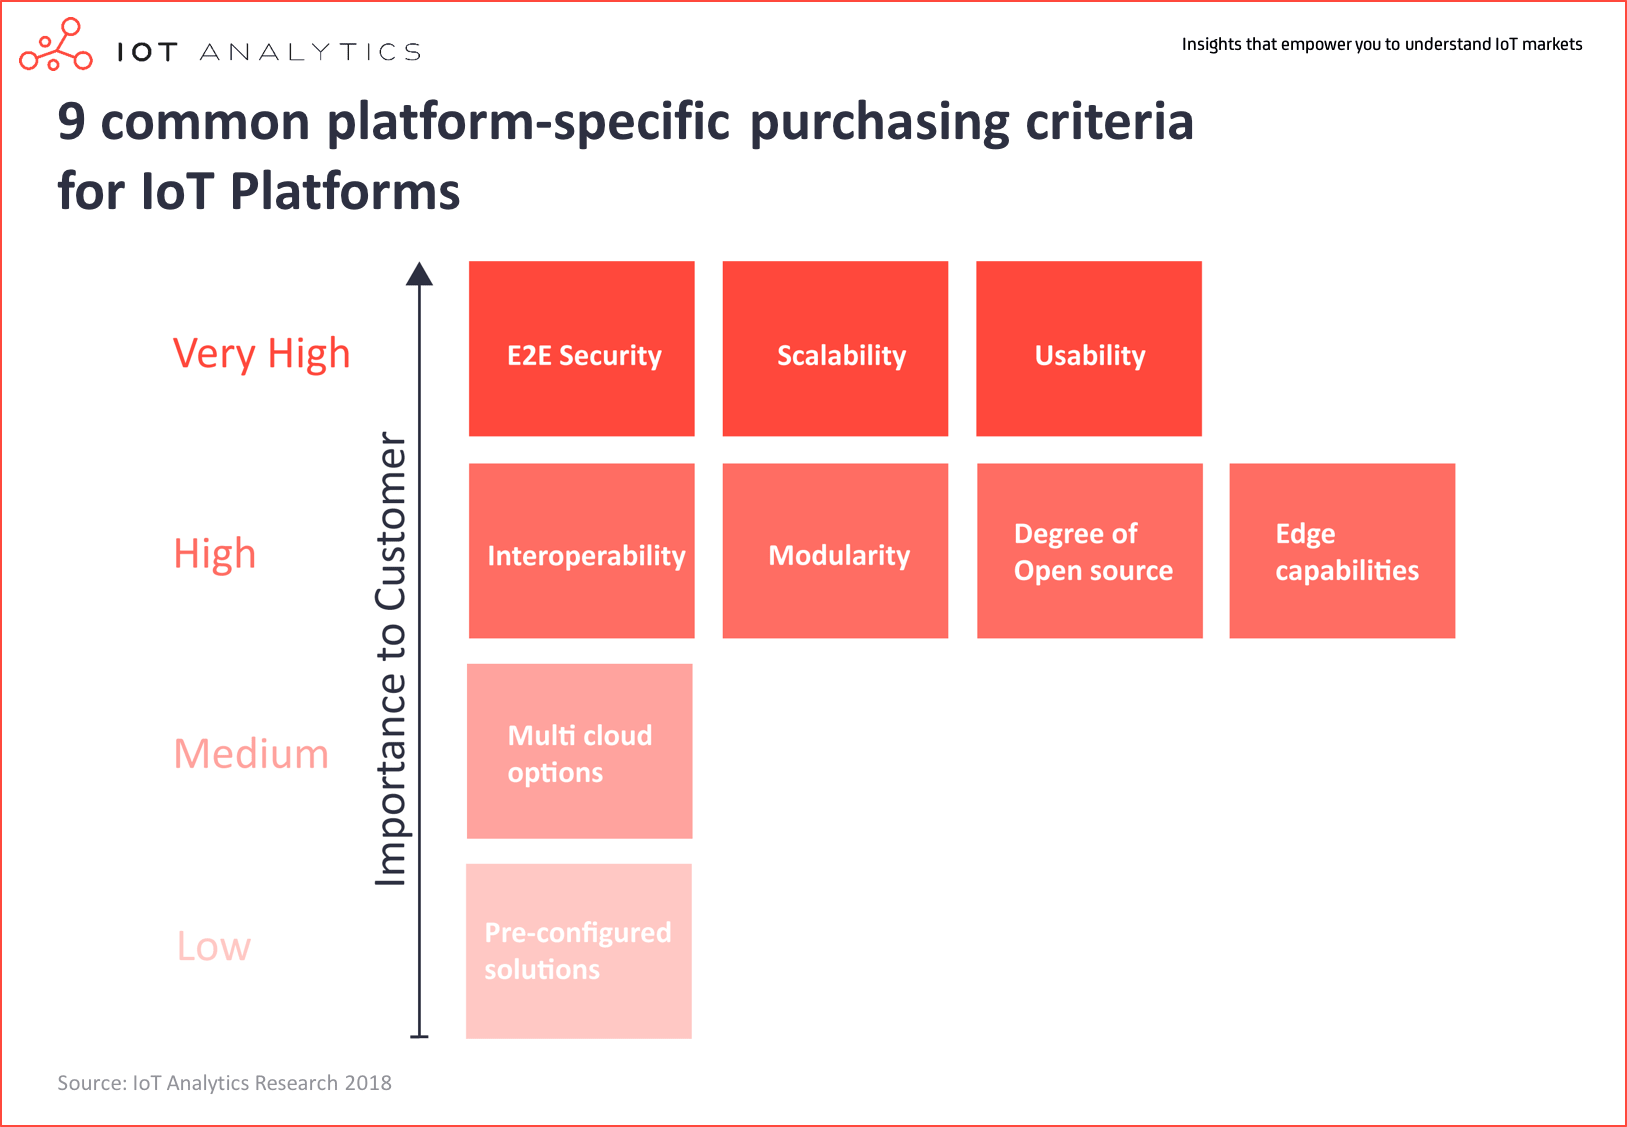 9 common platform-specific purchasing criteria 